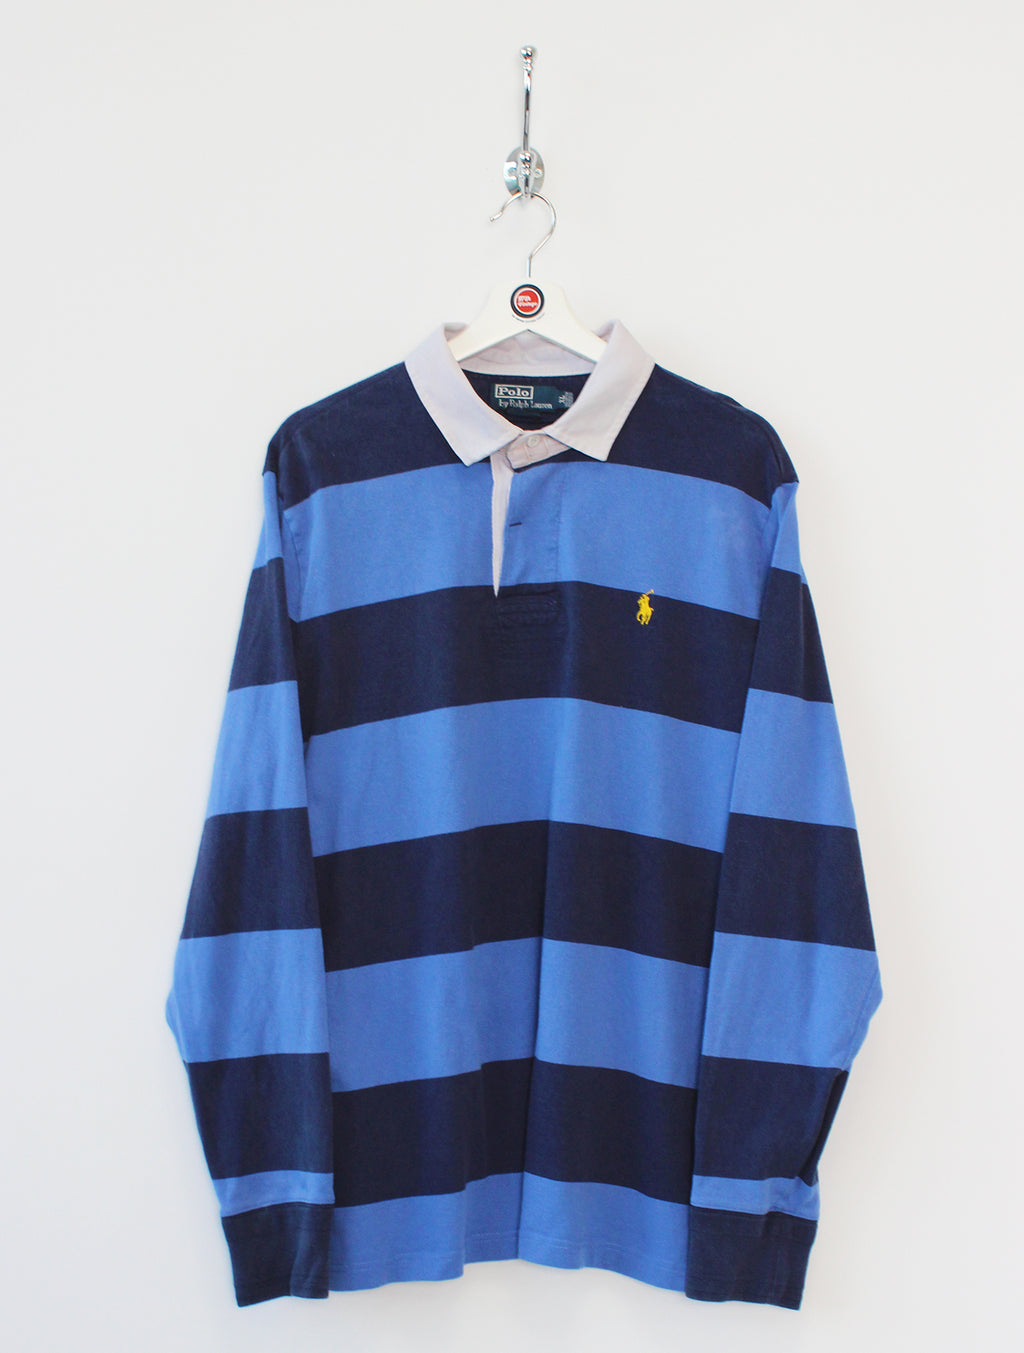 Ralph Lauren Polo Shirt (XL)